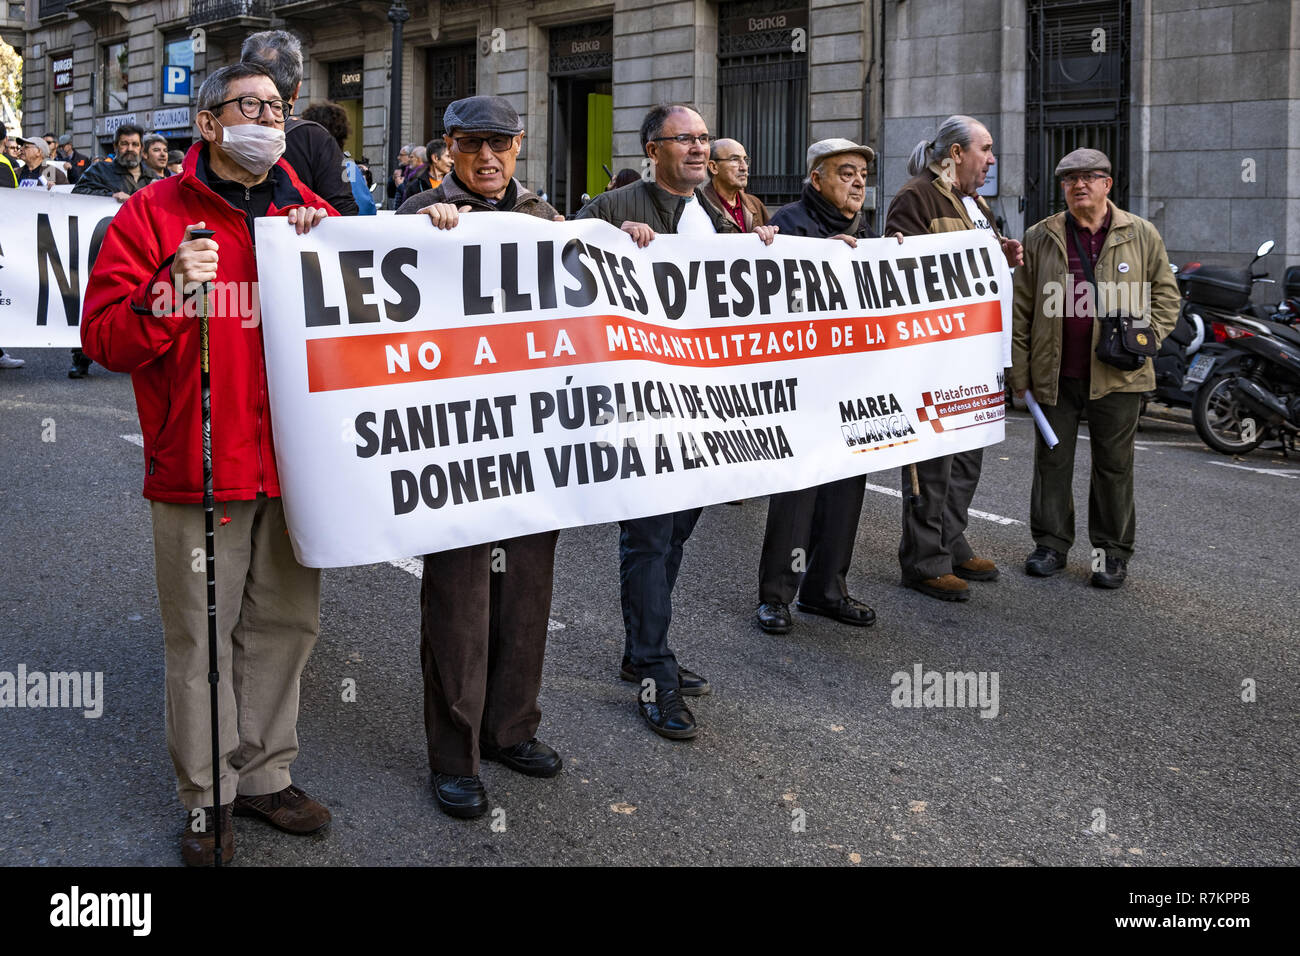 Barcelona, Catalonia, Spain. 10th December, 2018. A group of protesters in a state of retirement are seen holding a banner during the protest.Called by Marea Blanca Catalunya within the state fight against the waiting lists and the commercialization of health, the protesters have toured the center of Barcelona to finish in front of the Generalitat of Catalonia. Credit: Paco Freire/SOPA Images/ZUMA Wire/Alamy Live News - Stock Image